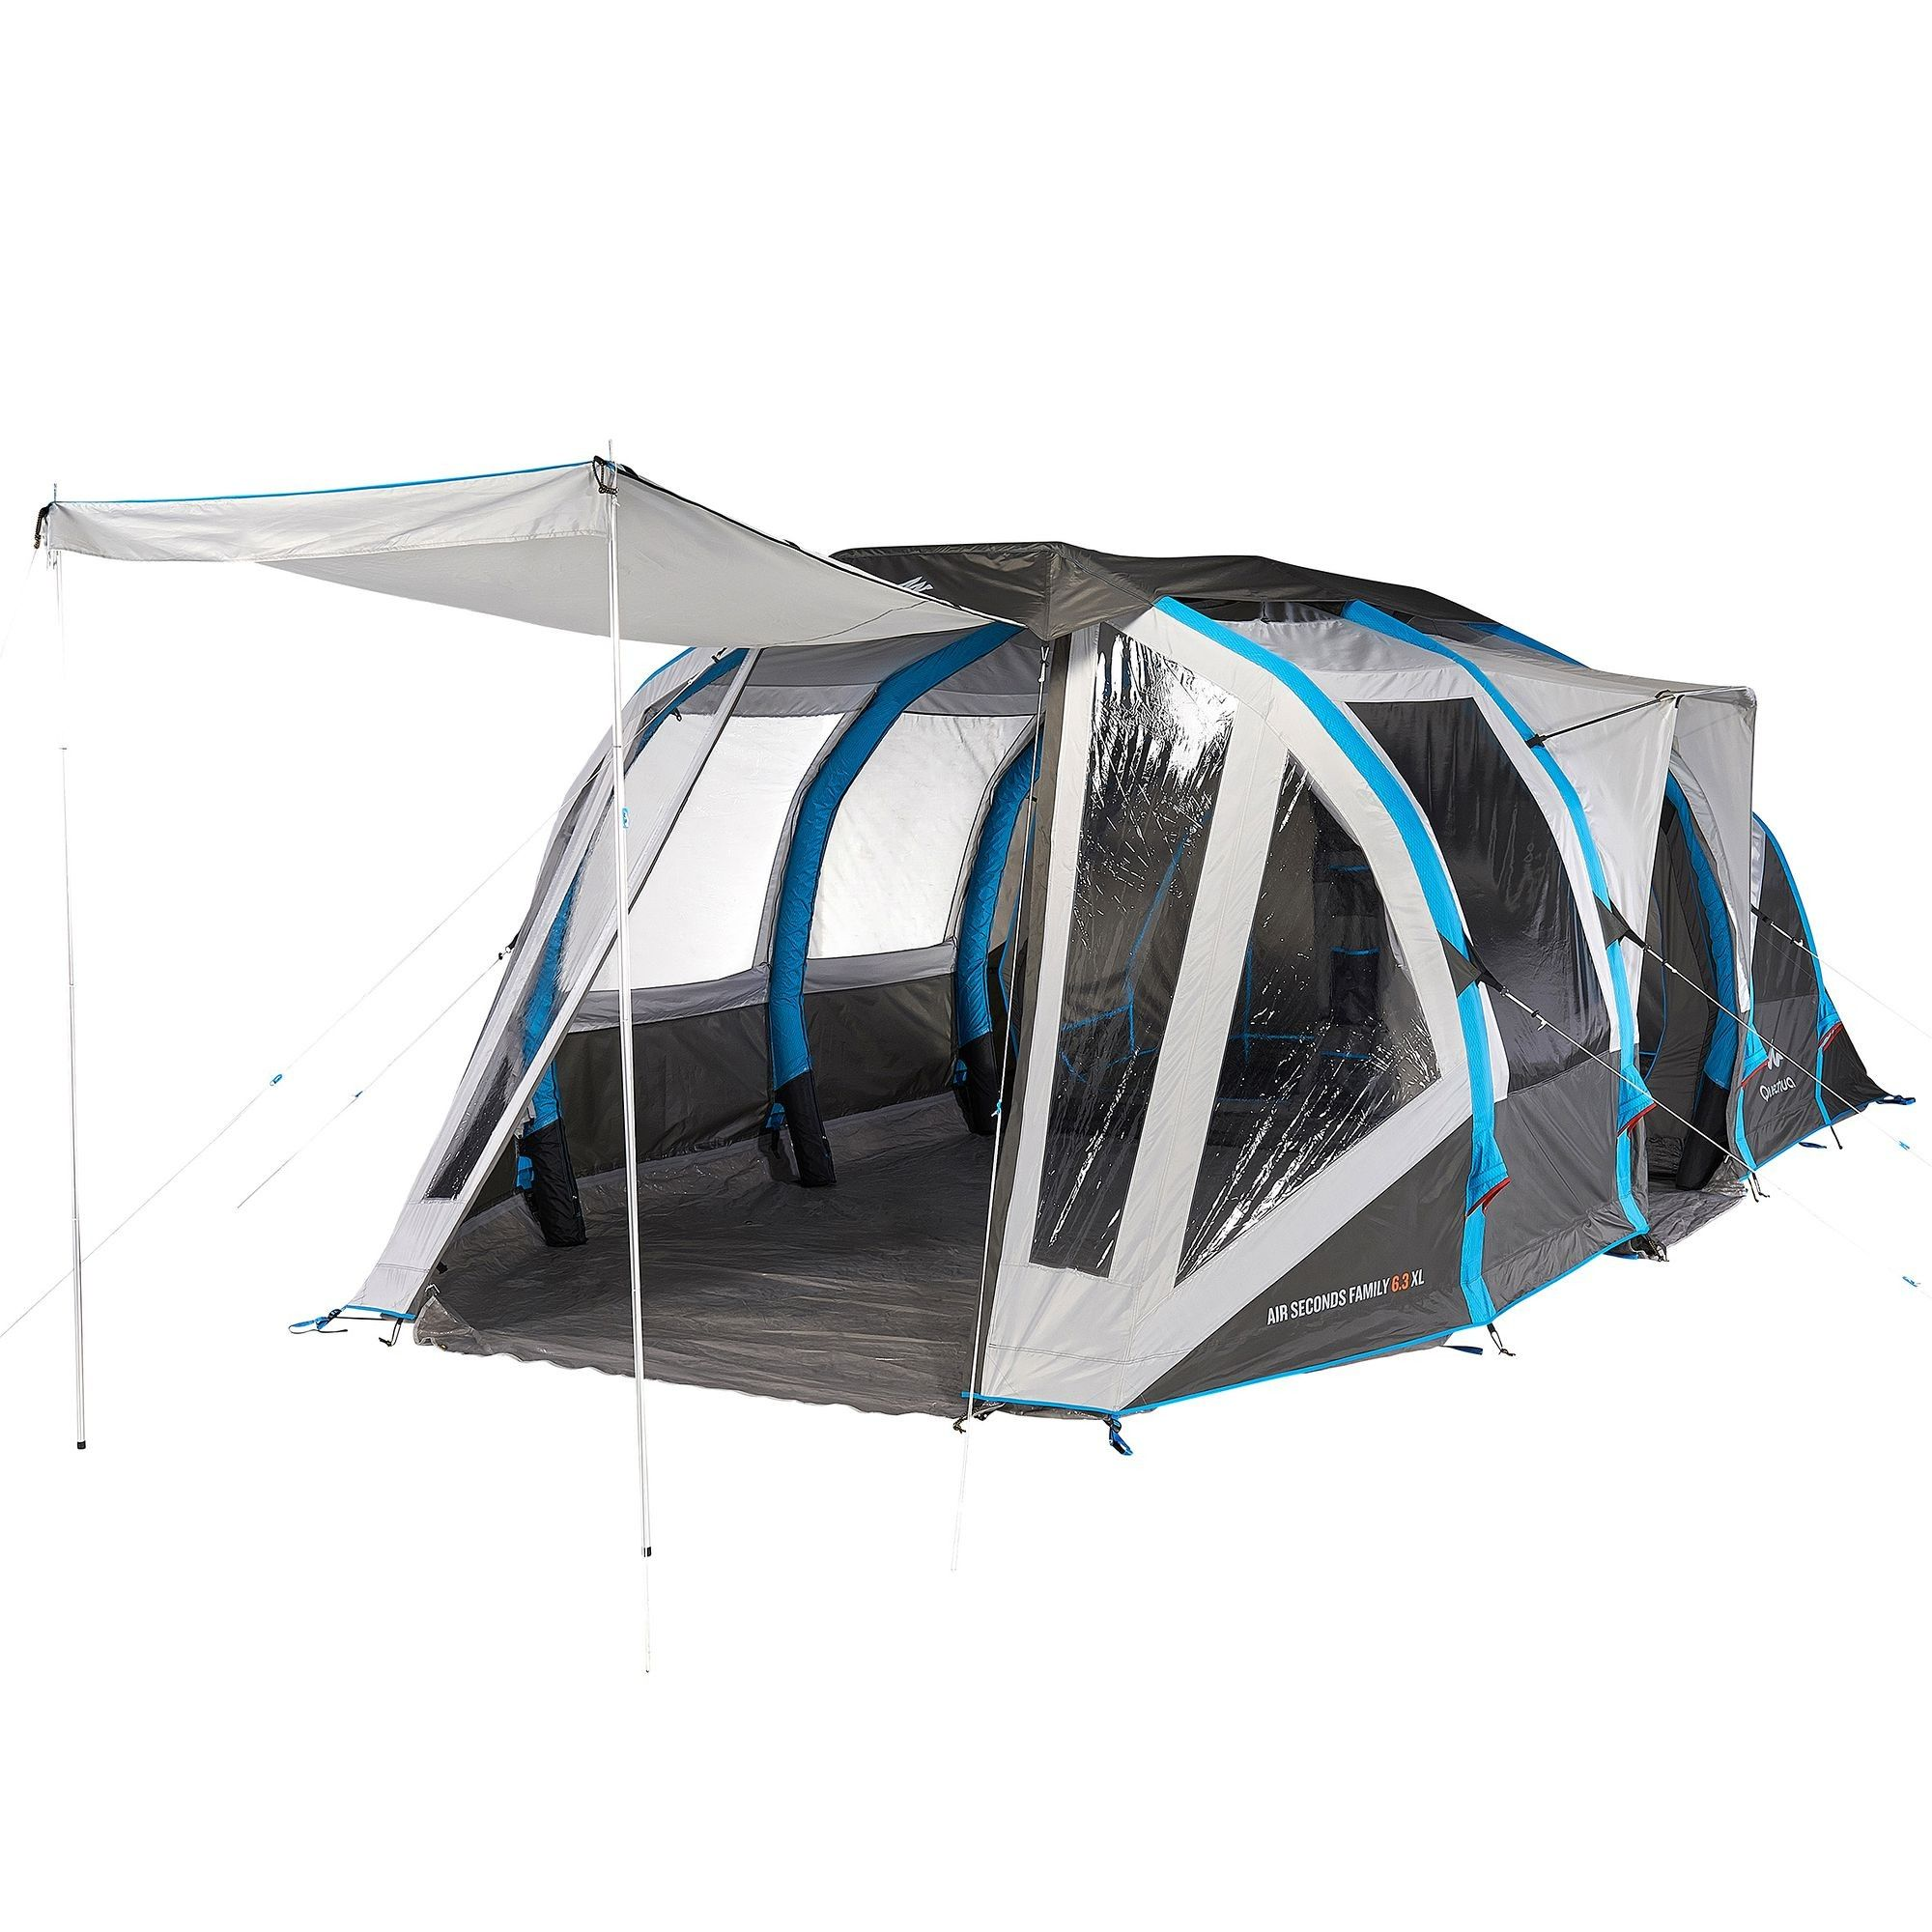 Tente Air Seconds Family 6 3xl Quechua Tente Decathlon Ventes Pas Cher Com Tente Gonflable Tente Decathlon Tente Familiale